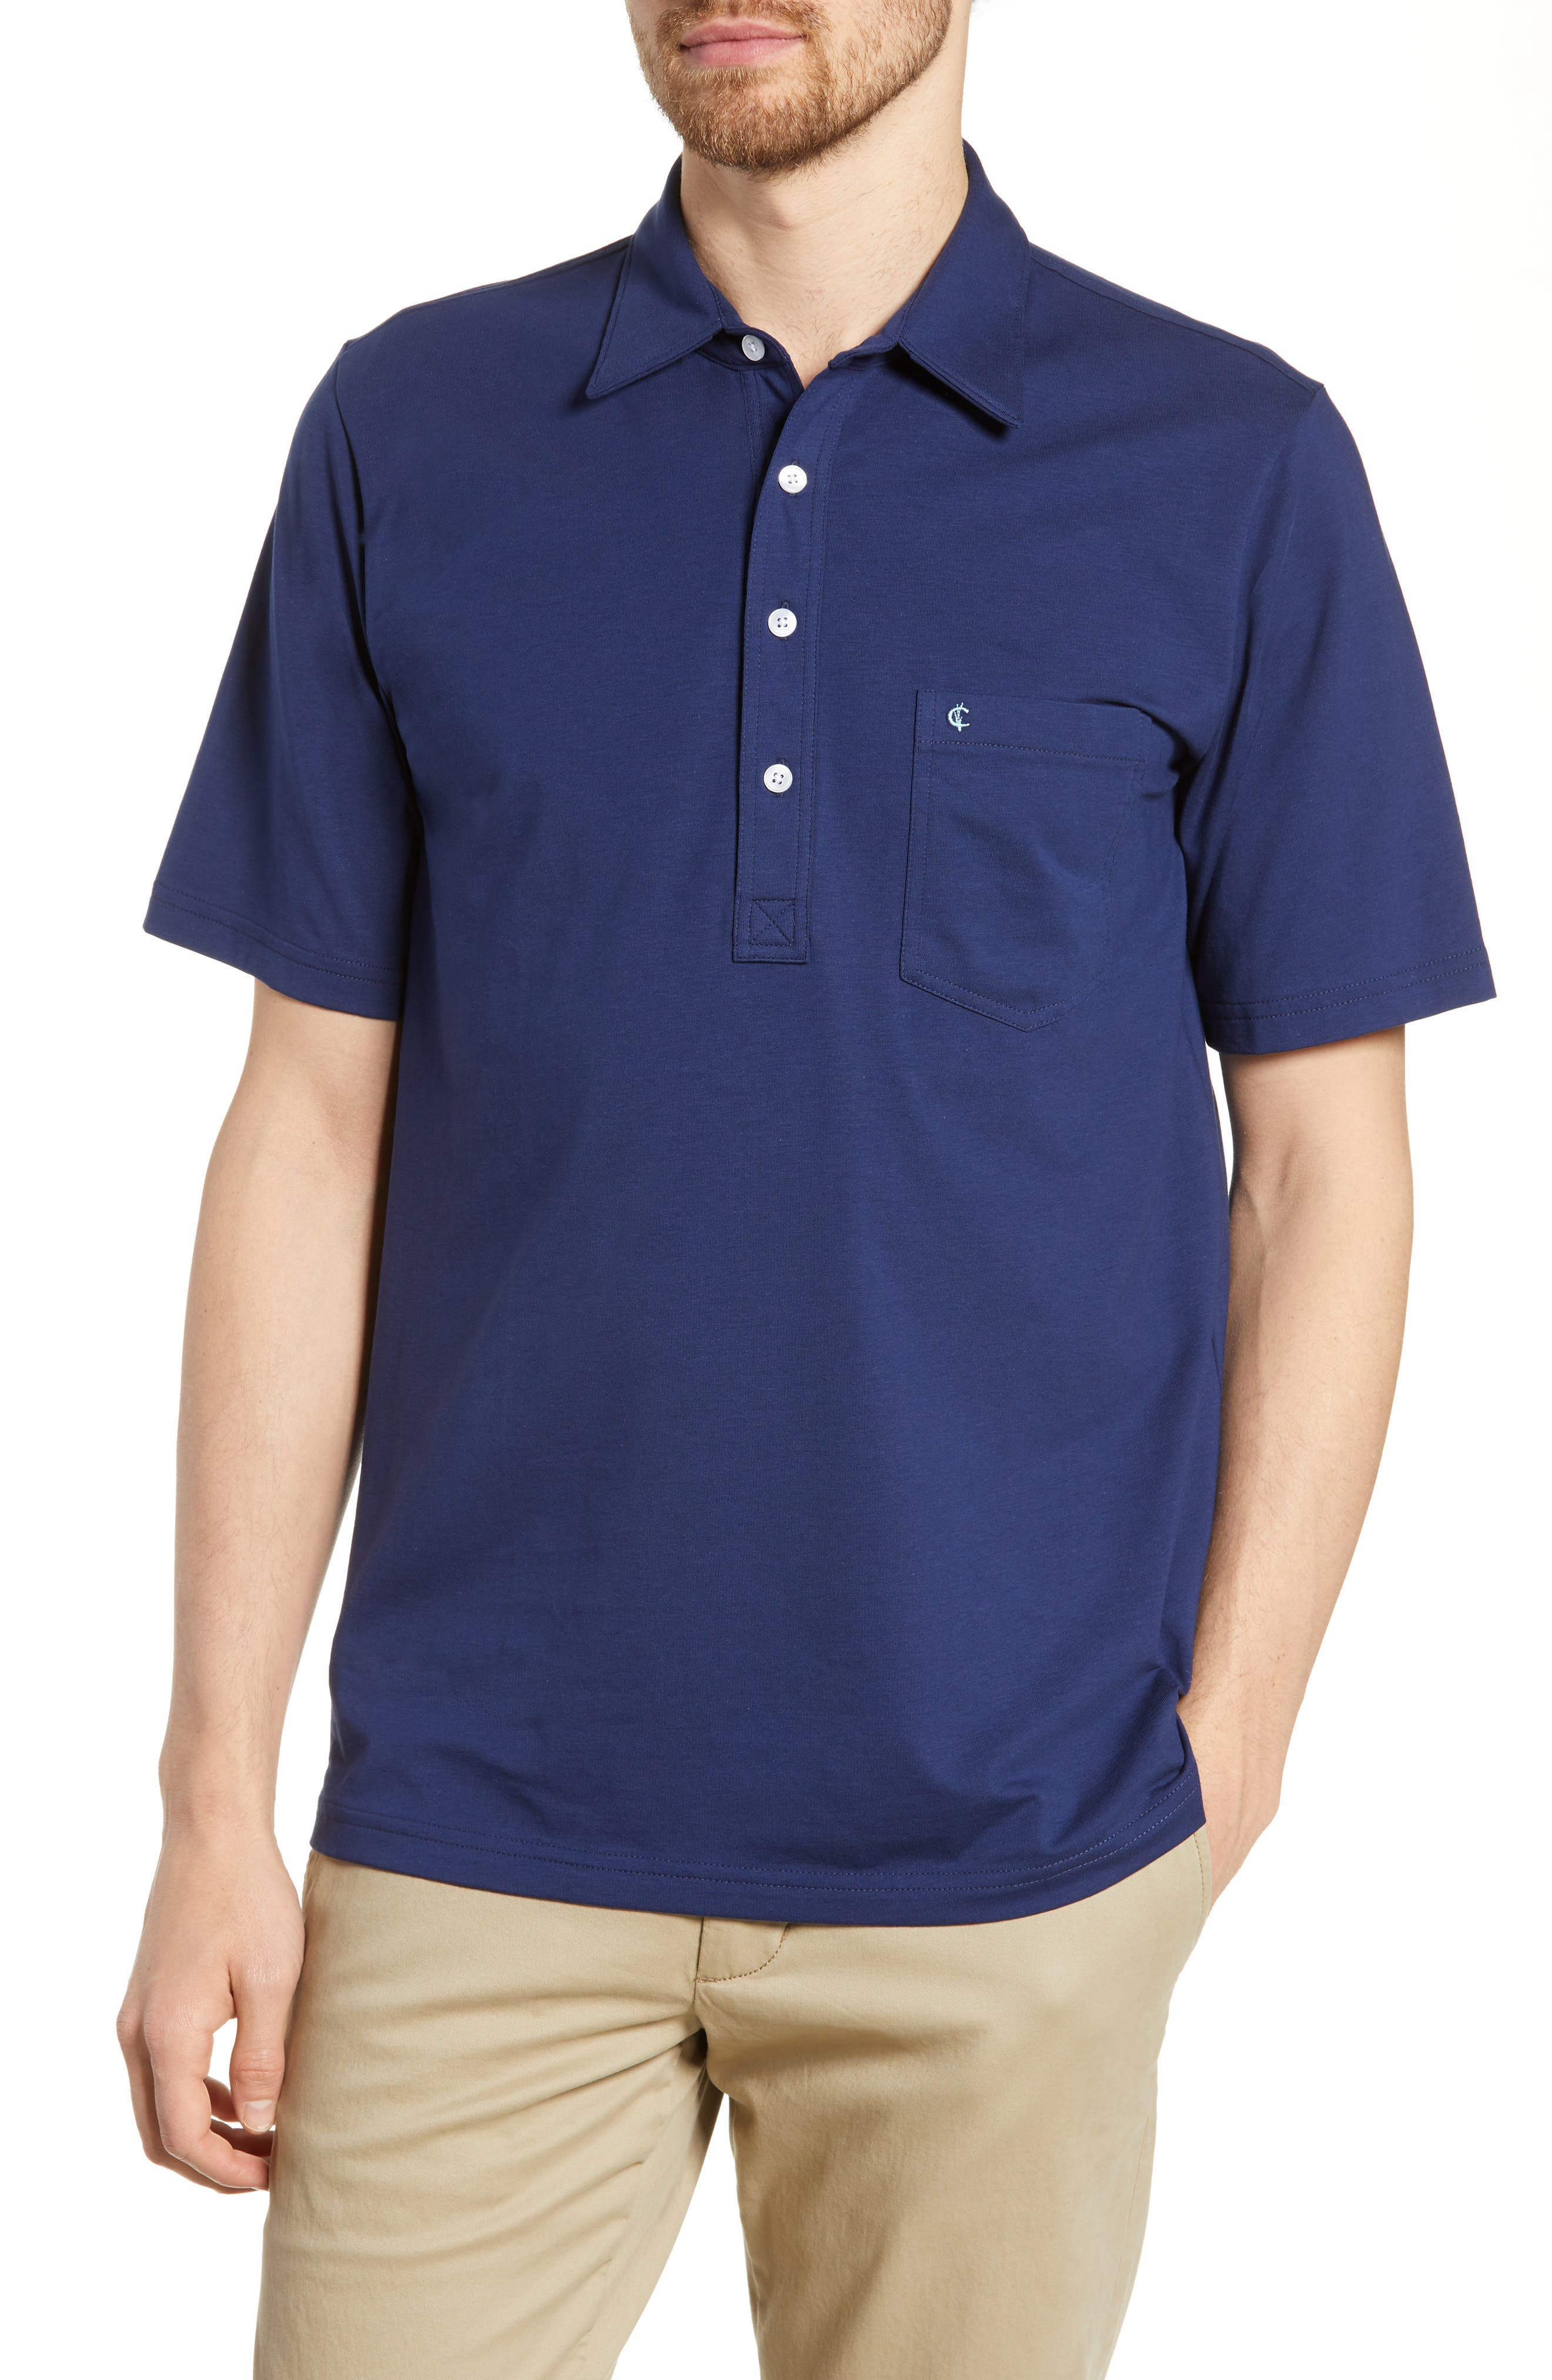 CRIQUET Players Stretch Jersey Polo, Main, color, NAVY